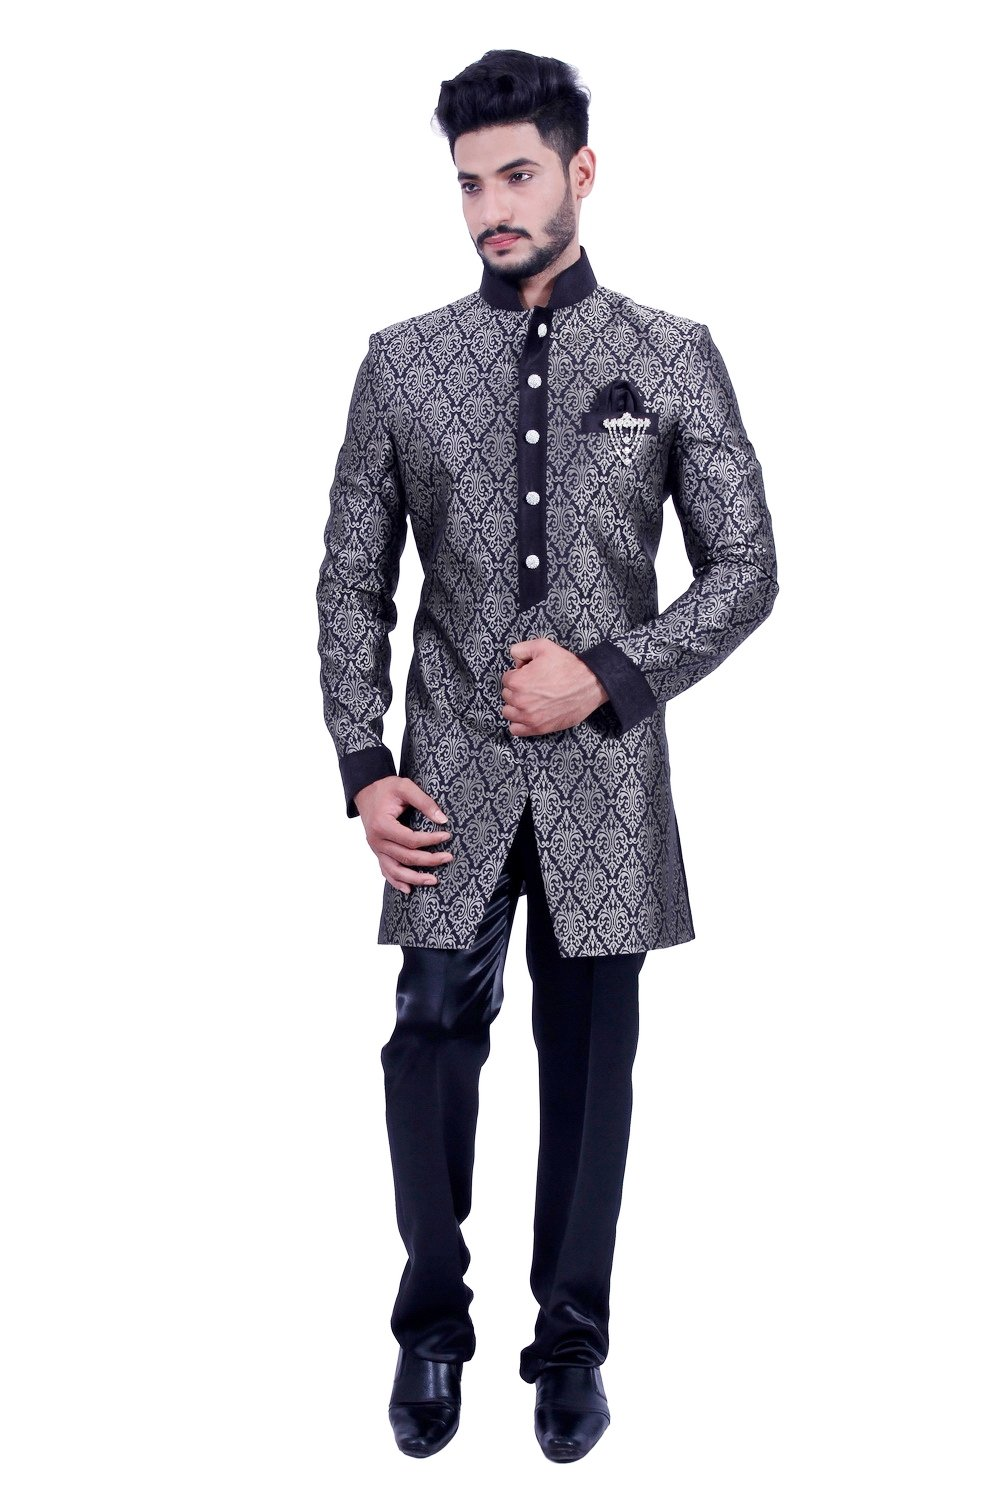 Silver and Black Indian Wedding Indo-Western Sherwani for Men